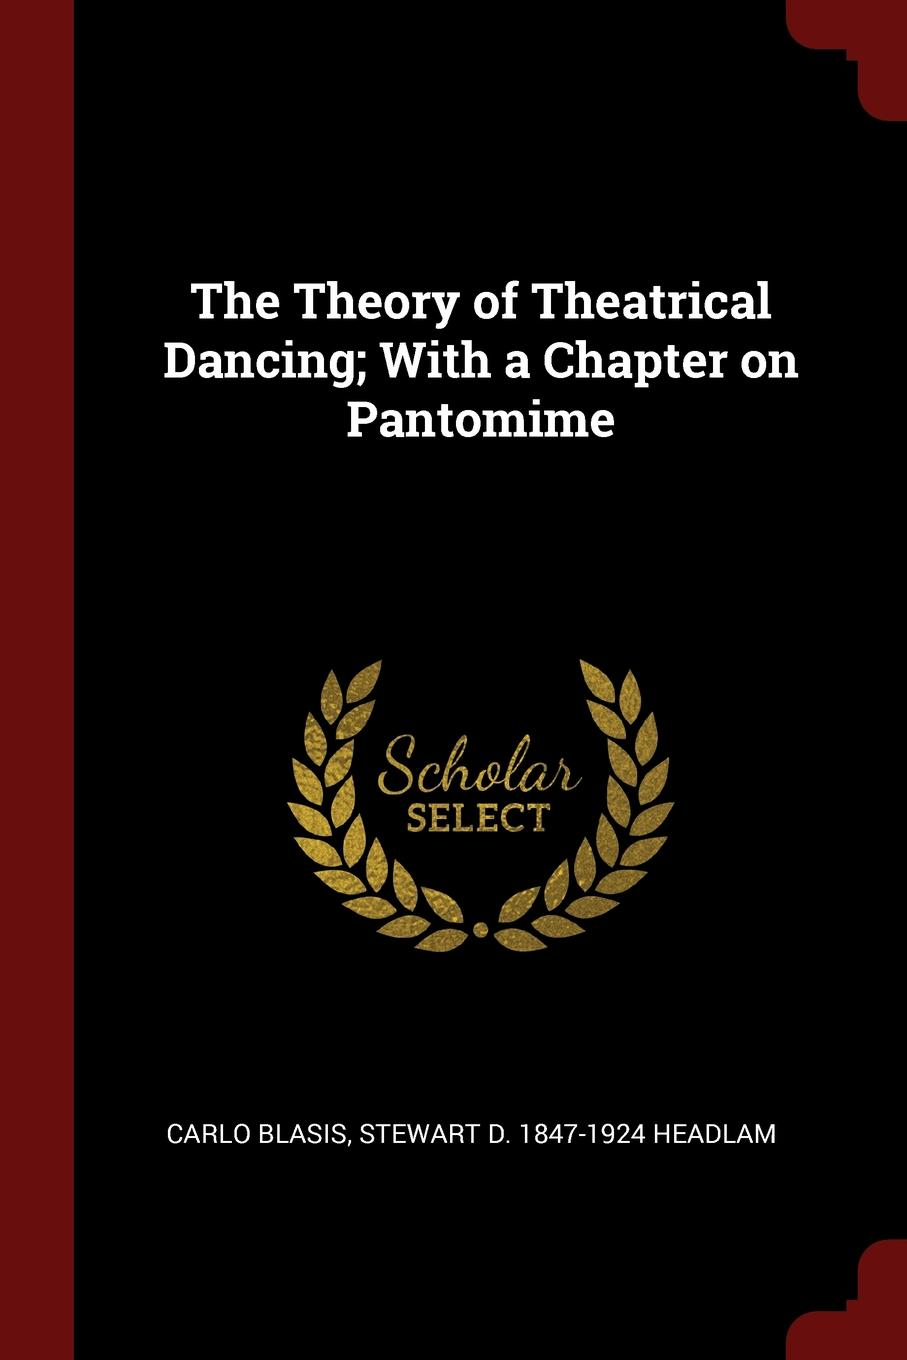 The Theory of Theatrical Dancing; With a Chapter on Pantomime